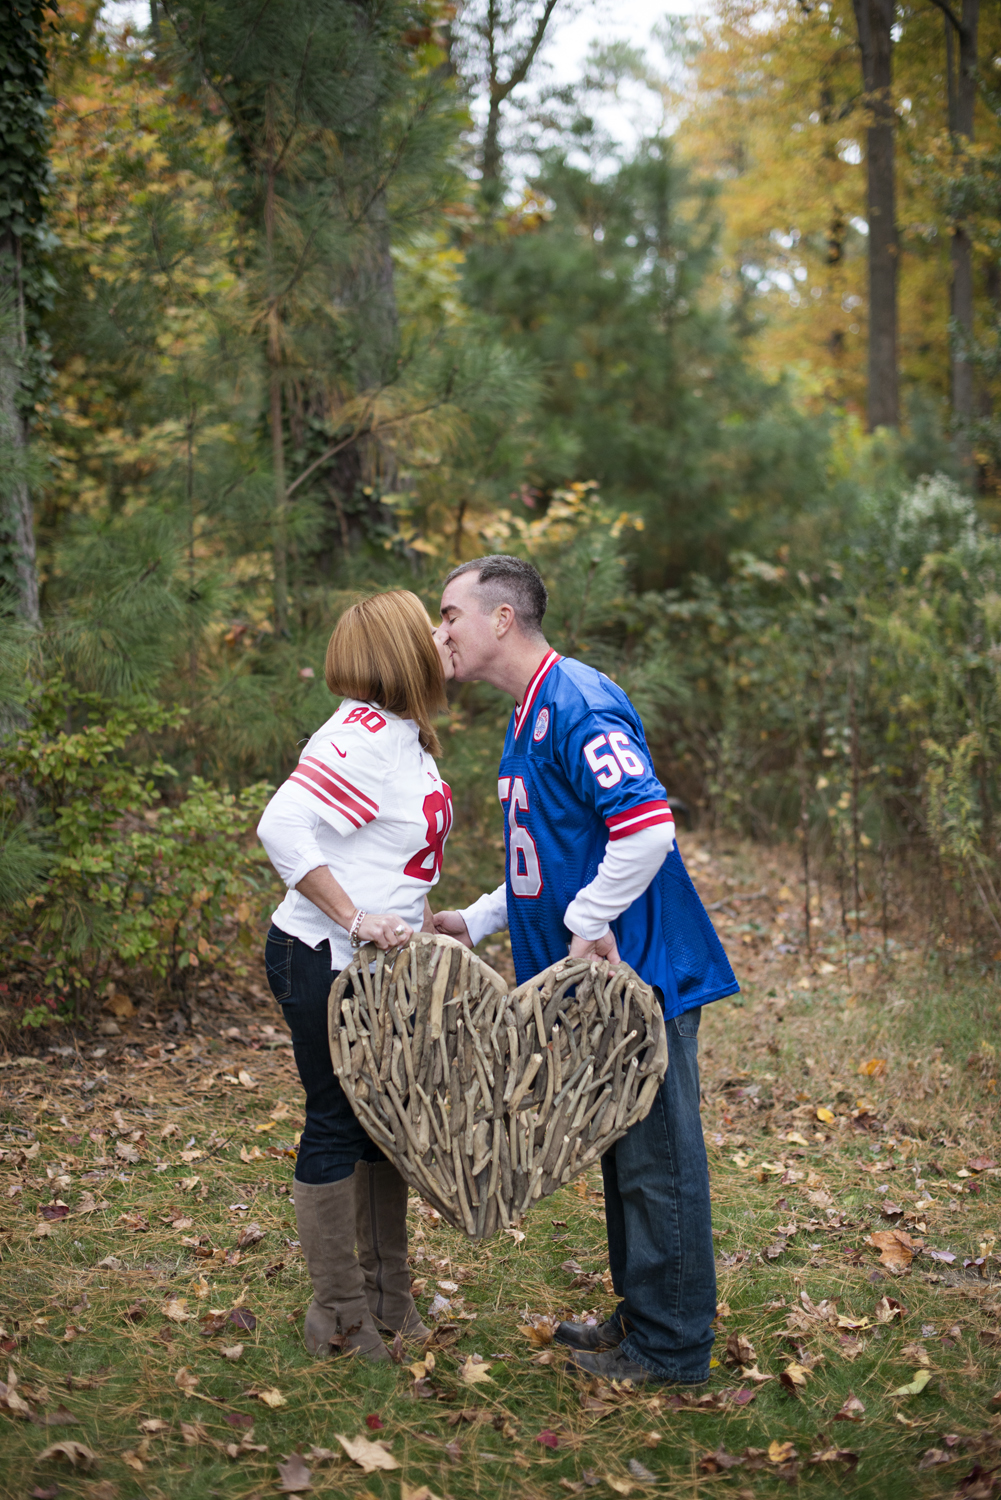 Fall engagement session with NFL jerseys